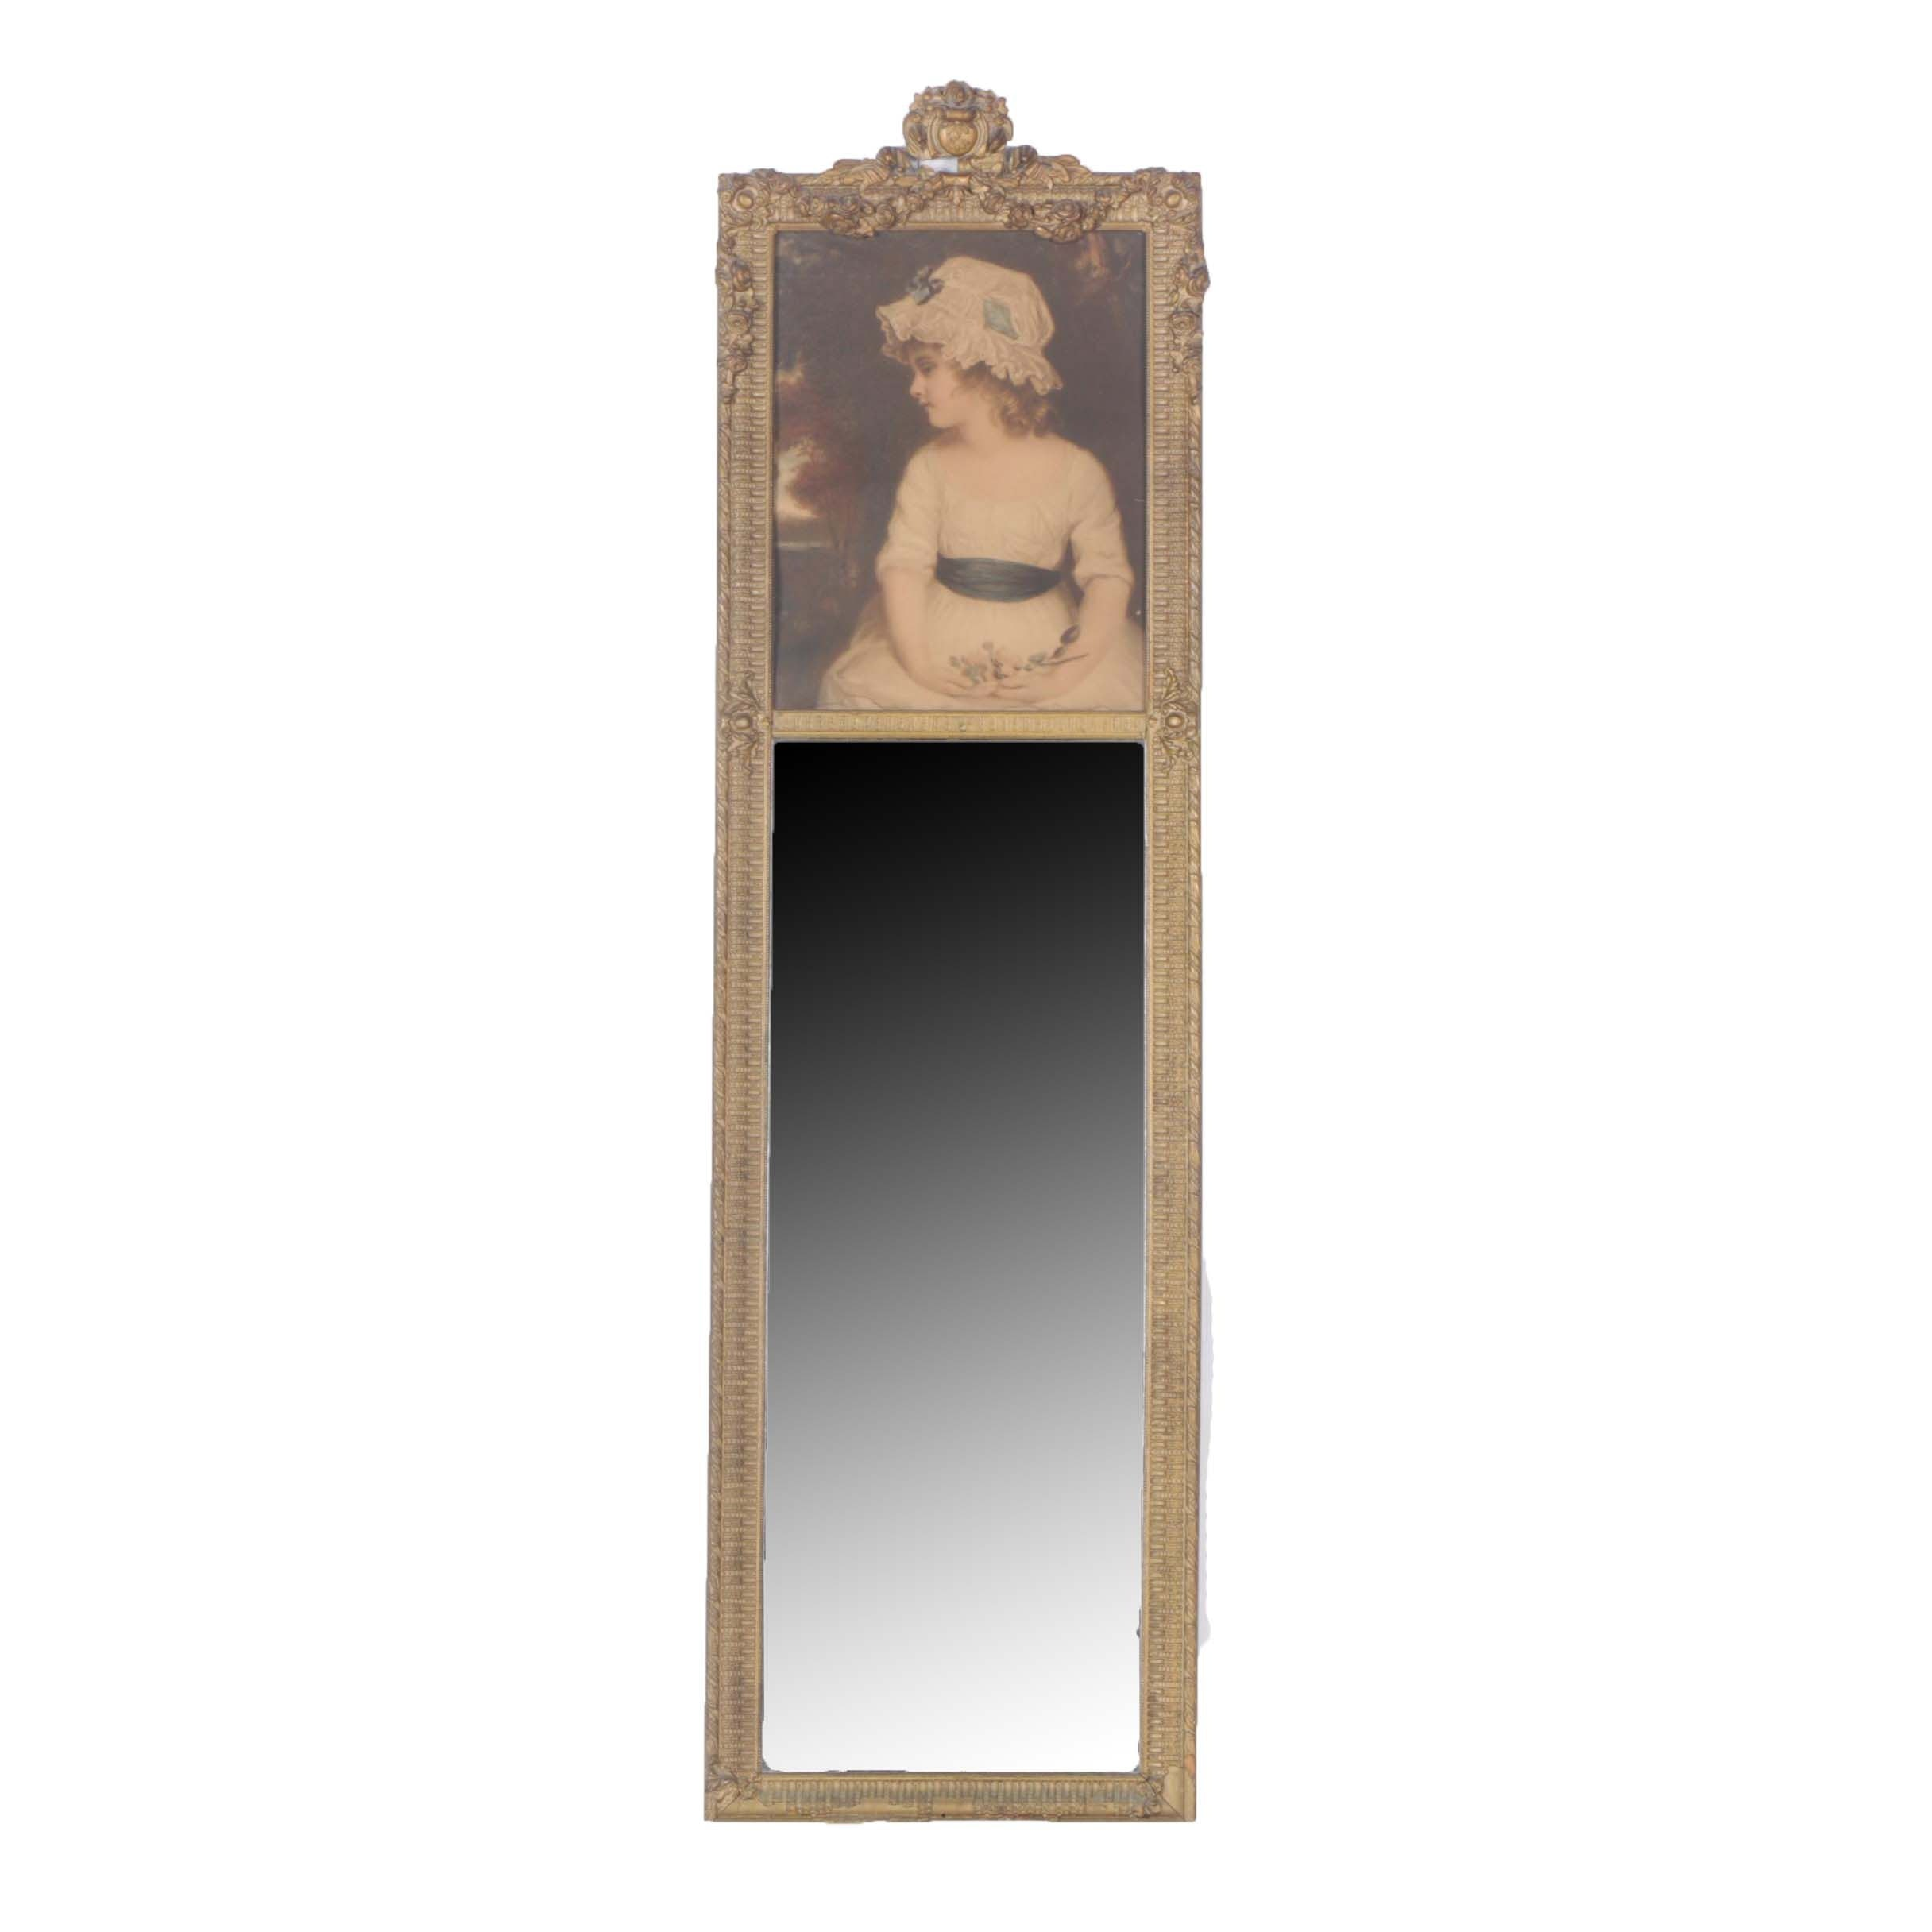 Vintage Giltwood Trumeau Mirror with 19th Century Style Portrait Under Glass